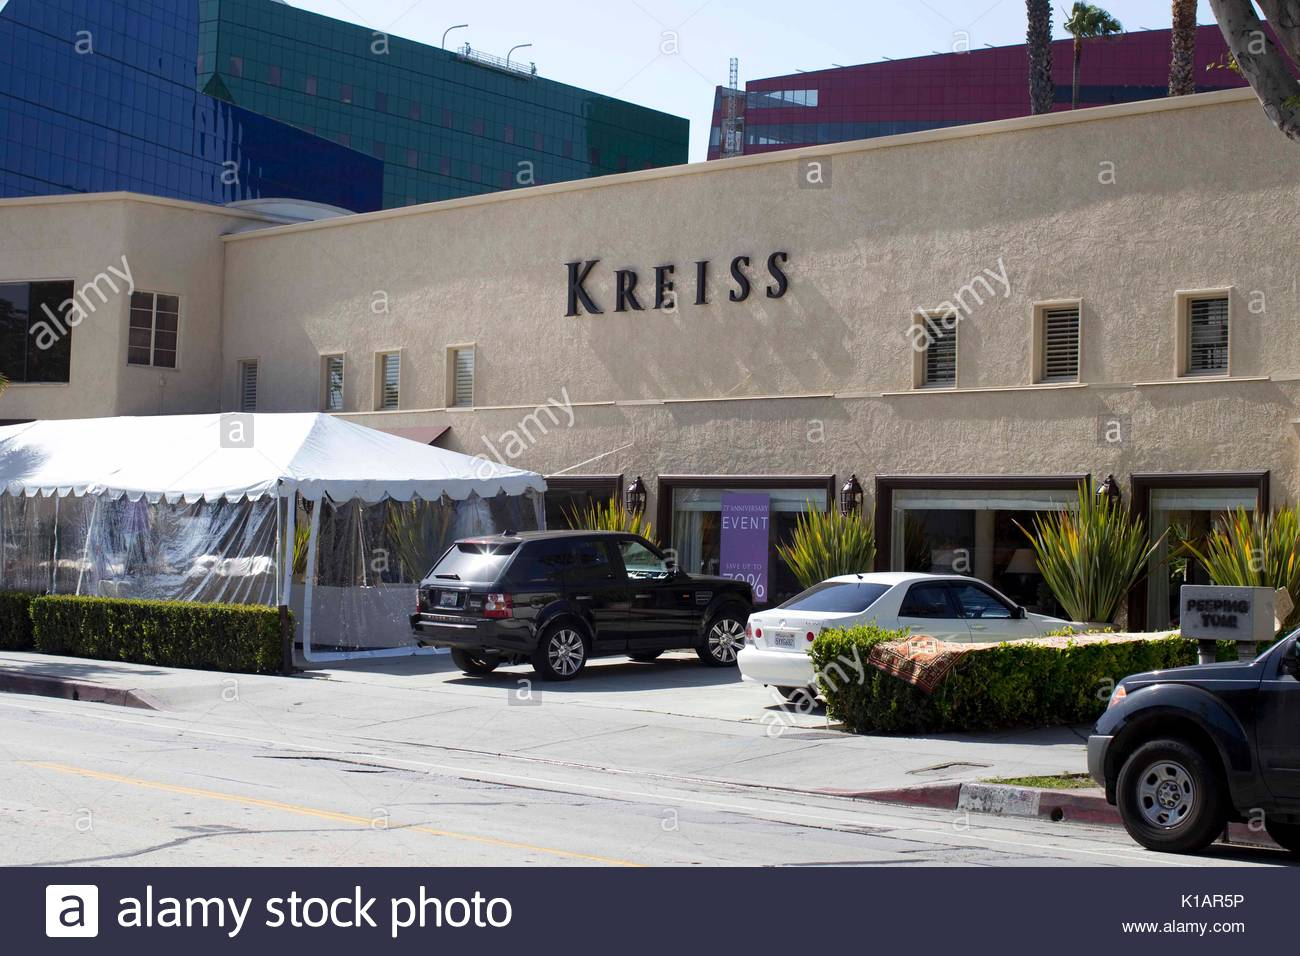 Lindsay Lohan Goes Shopping With A Film Crew At Kreiss Furniture Store On  Melrose Ave, West Hollywood.